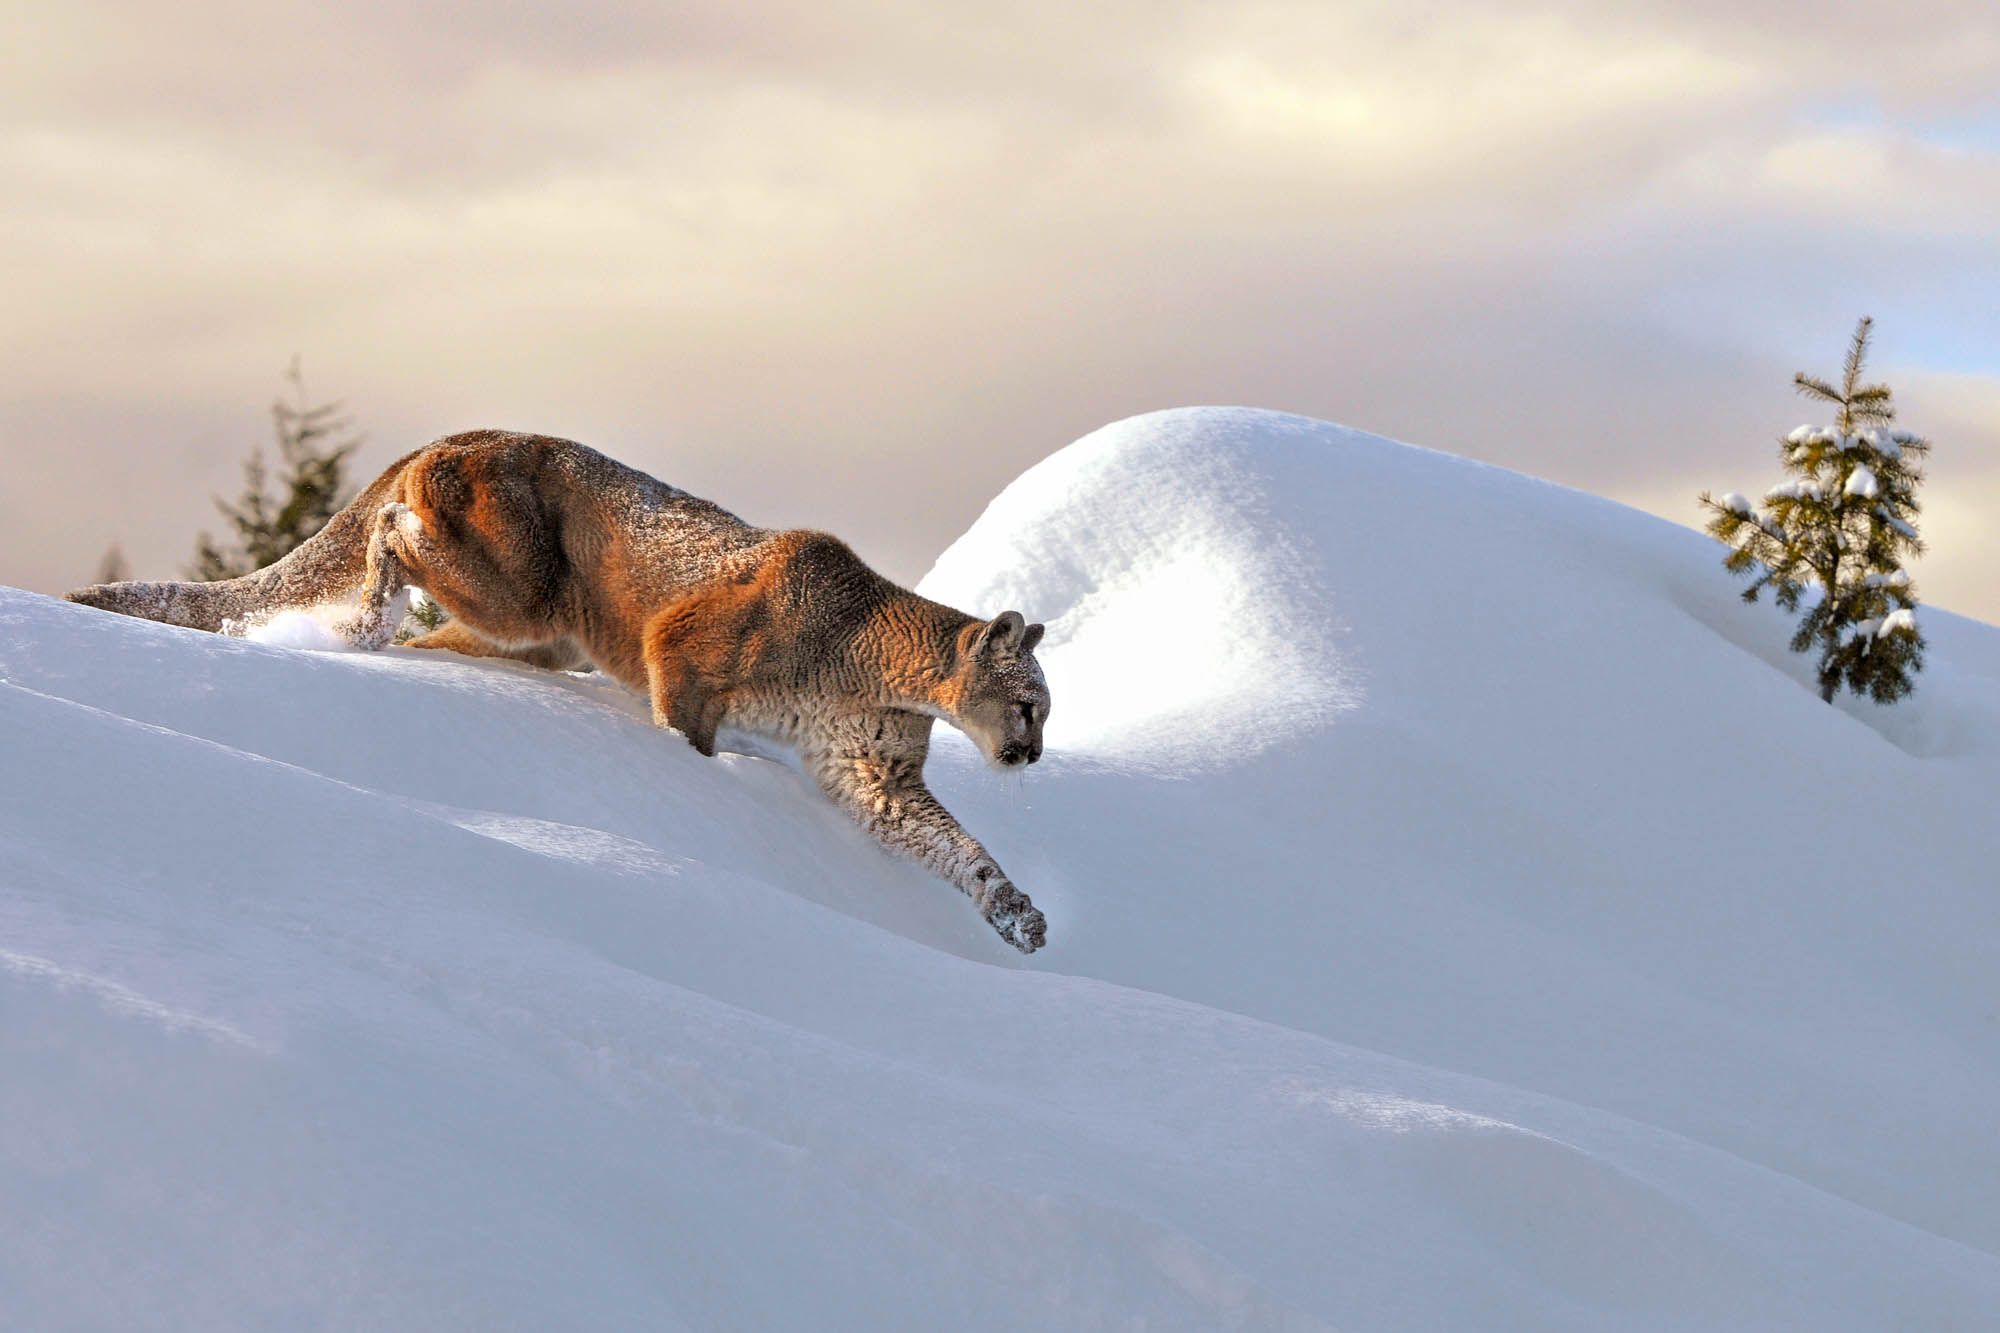 Mountain Lion cresting ridge in the winter captured with a telephoto lens